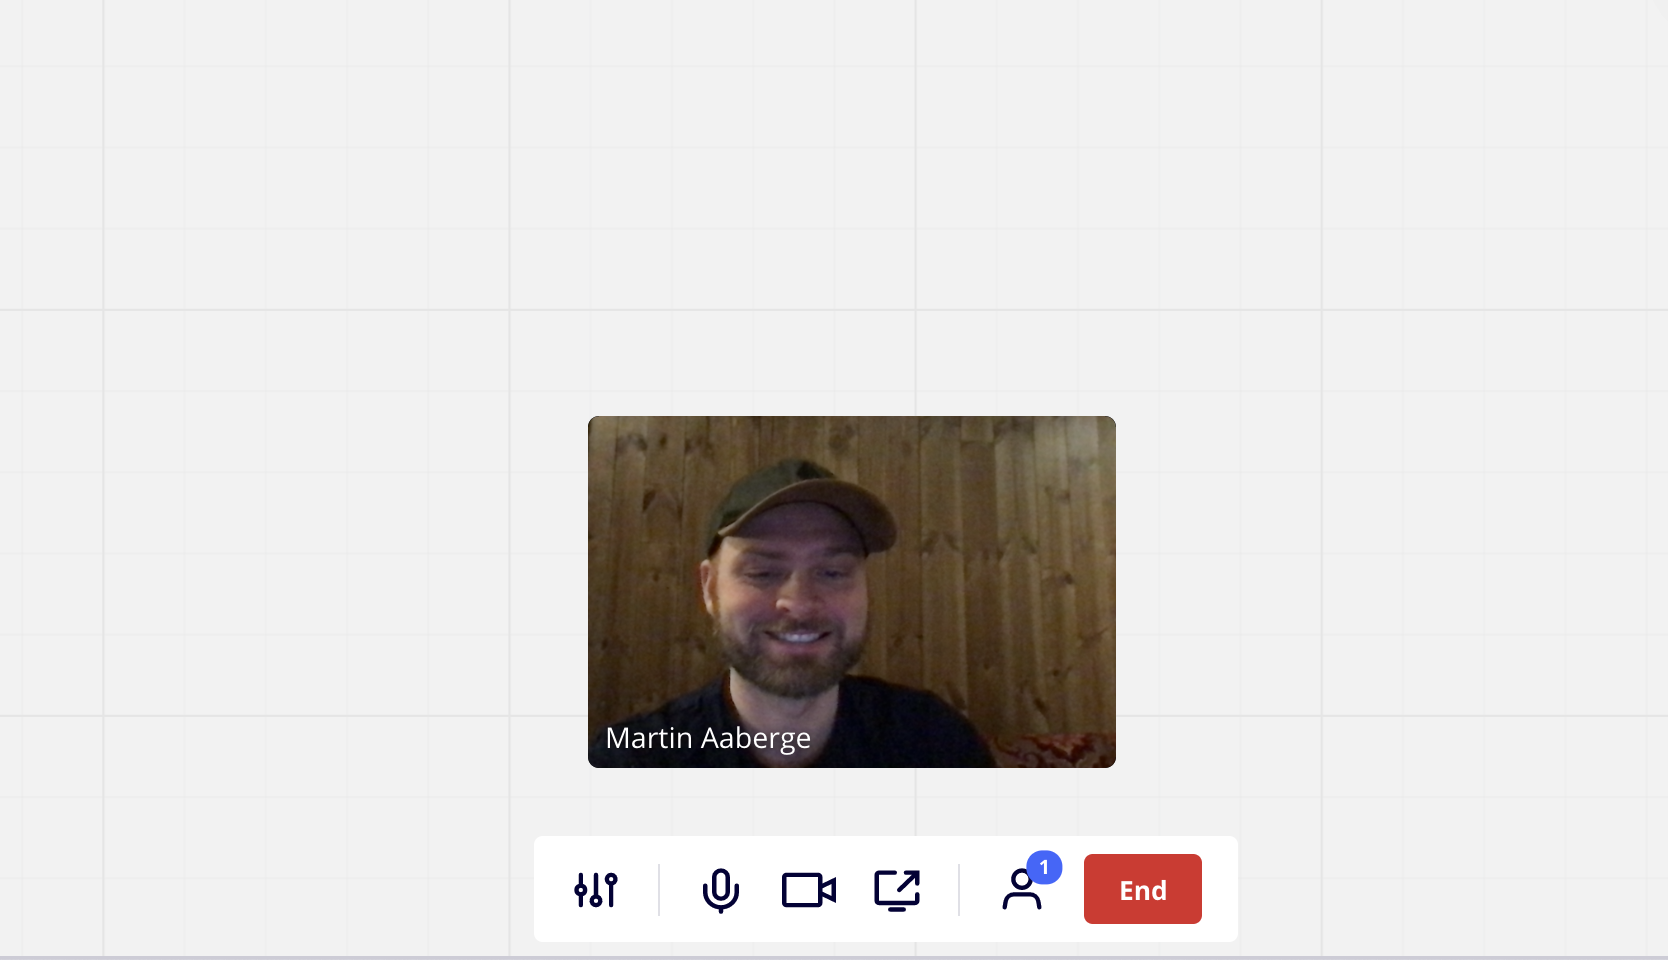 screenshot of the video chat in progress